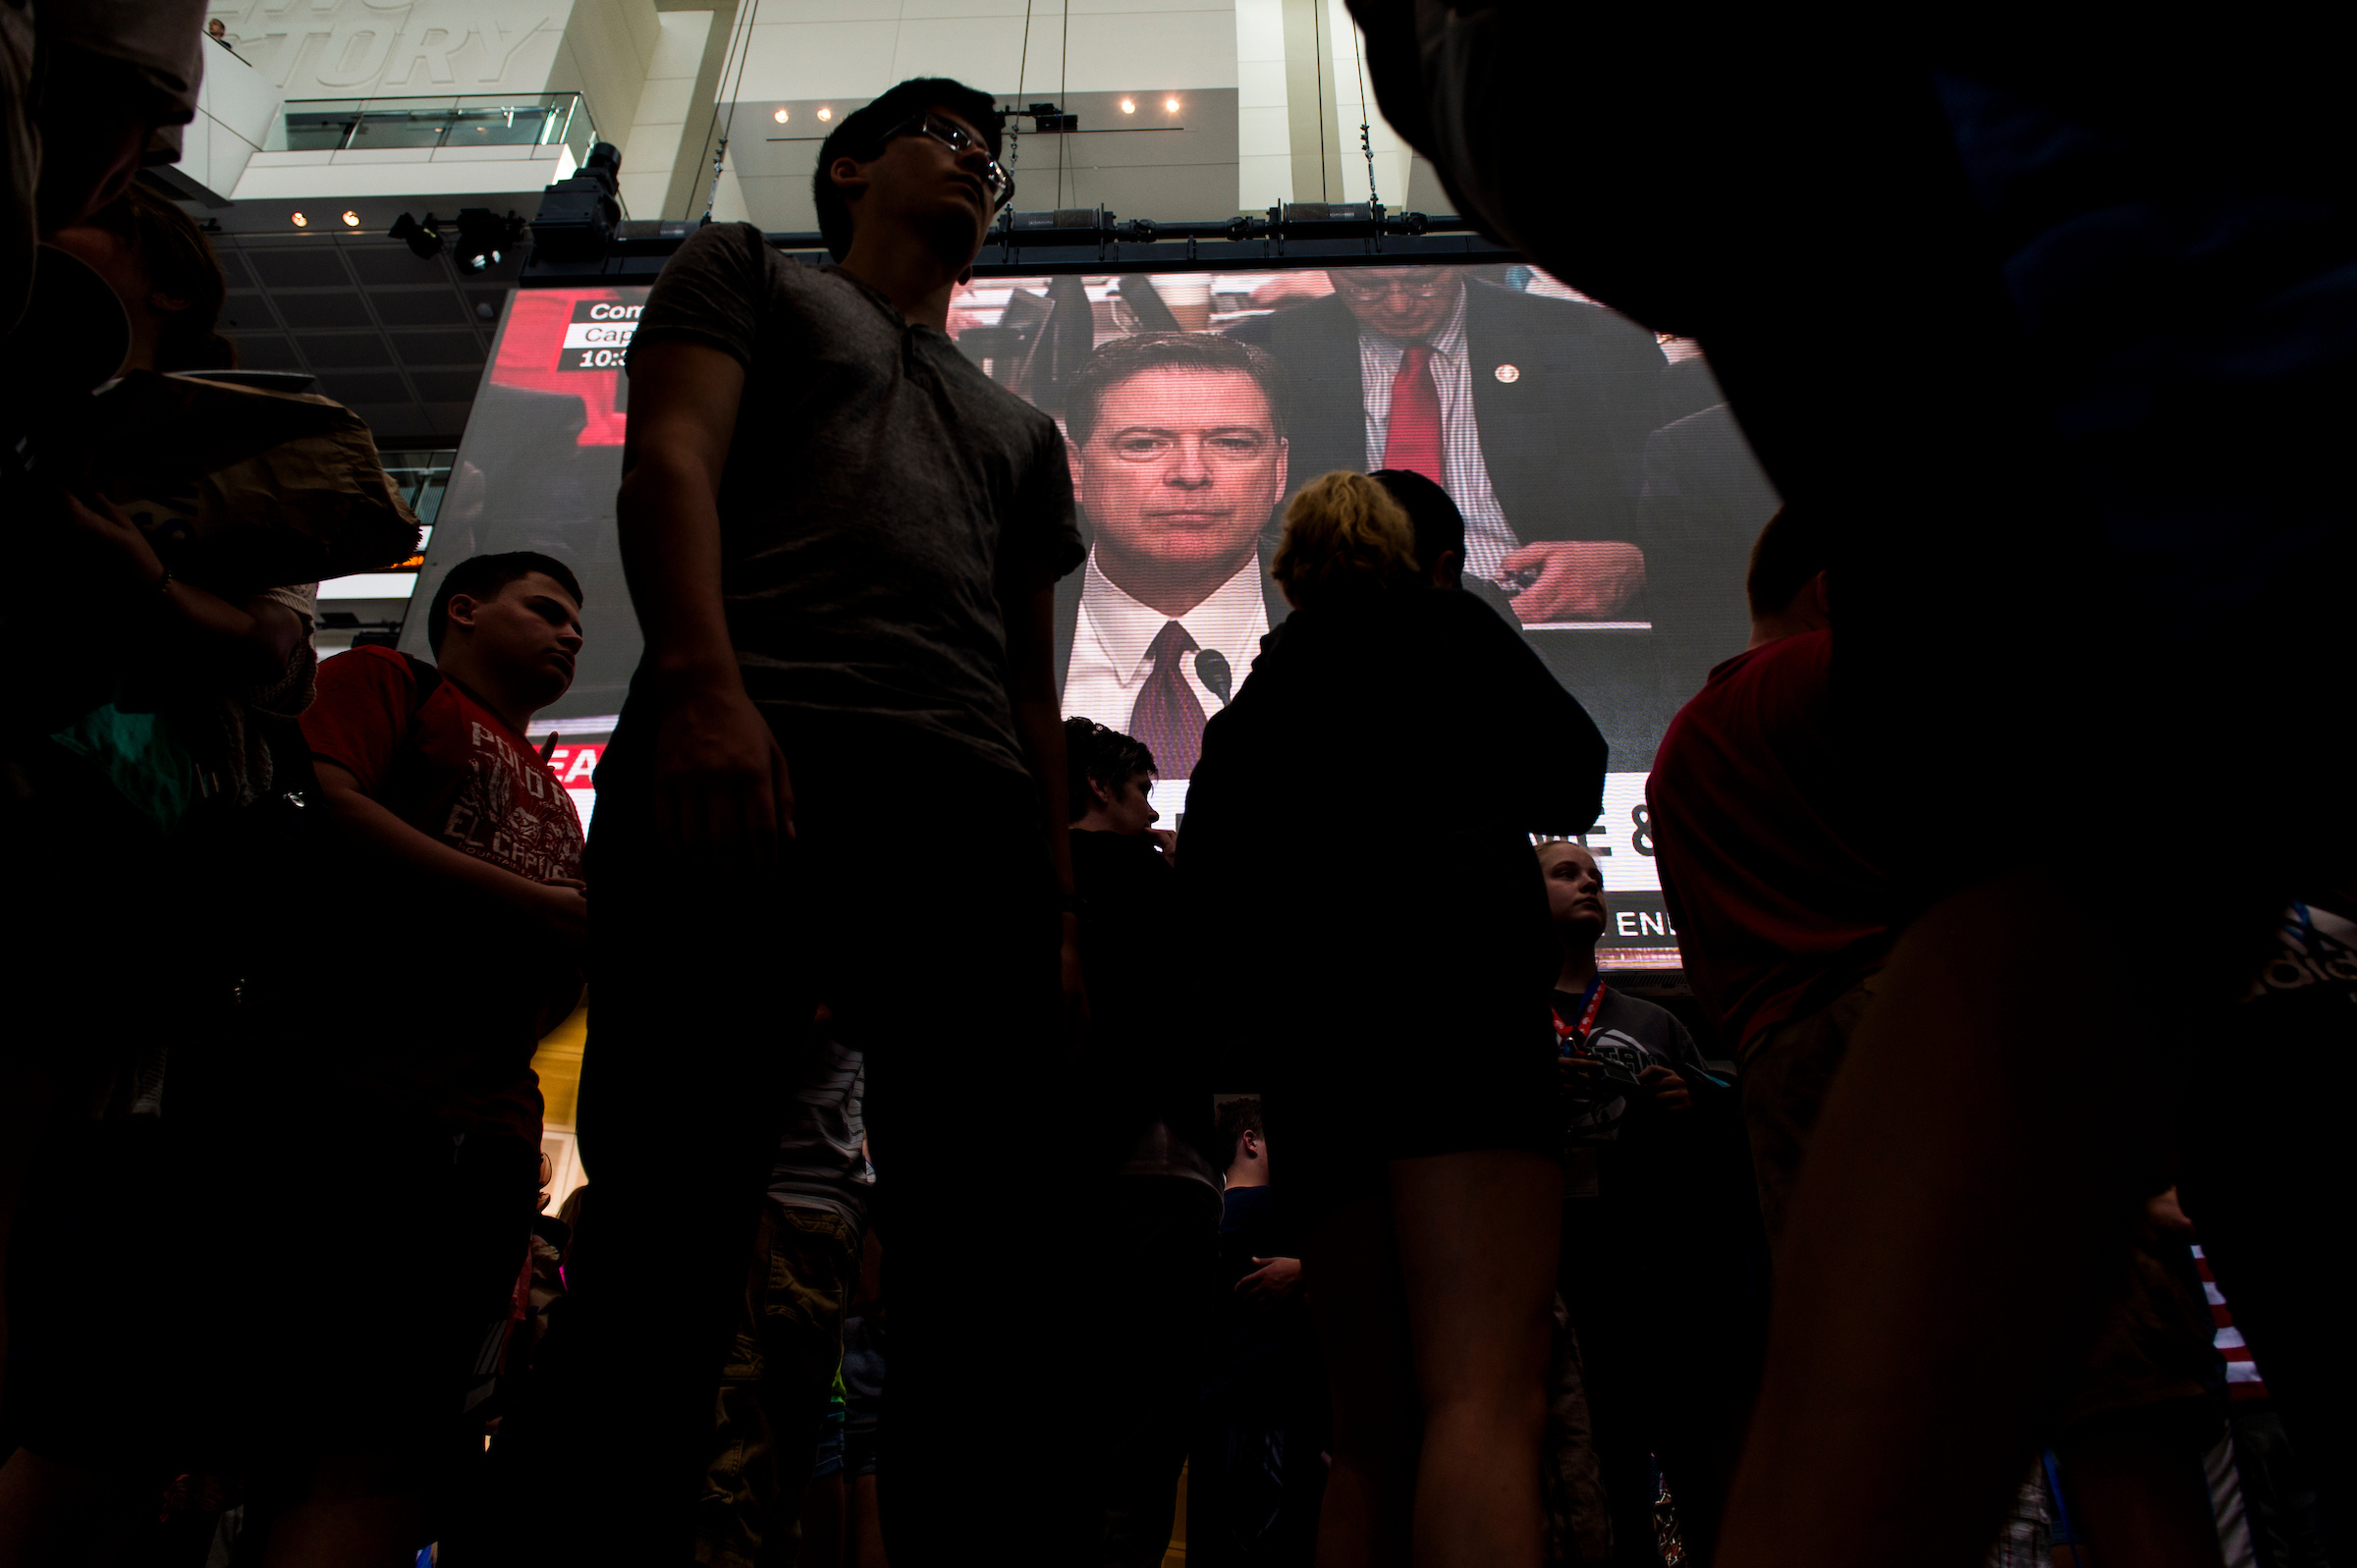 Comey is shown testifying on the Newseum's large video screen during the Senate Select Intelligence Committee hearing. (Bill Clark/CQ Roll Call)